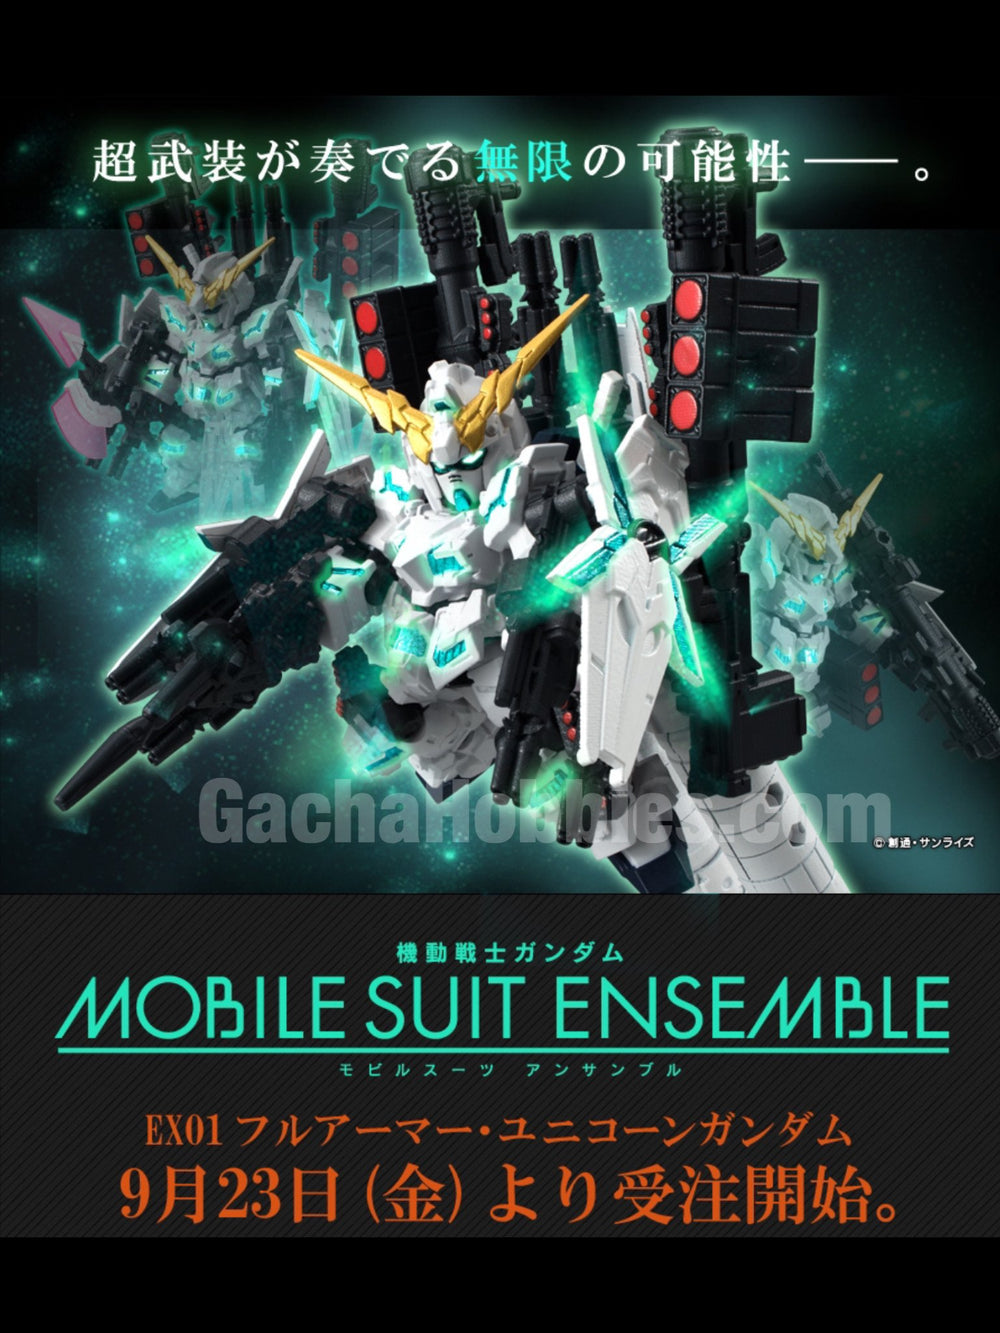 Full Armer Gundam Mobile Suit Ensemble Ex01 Limited